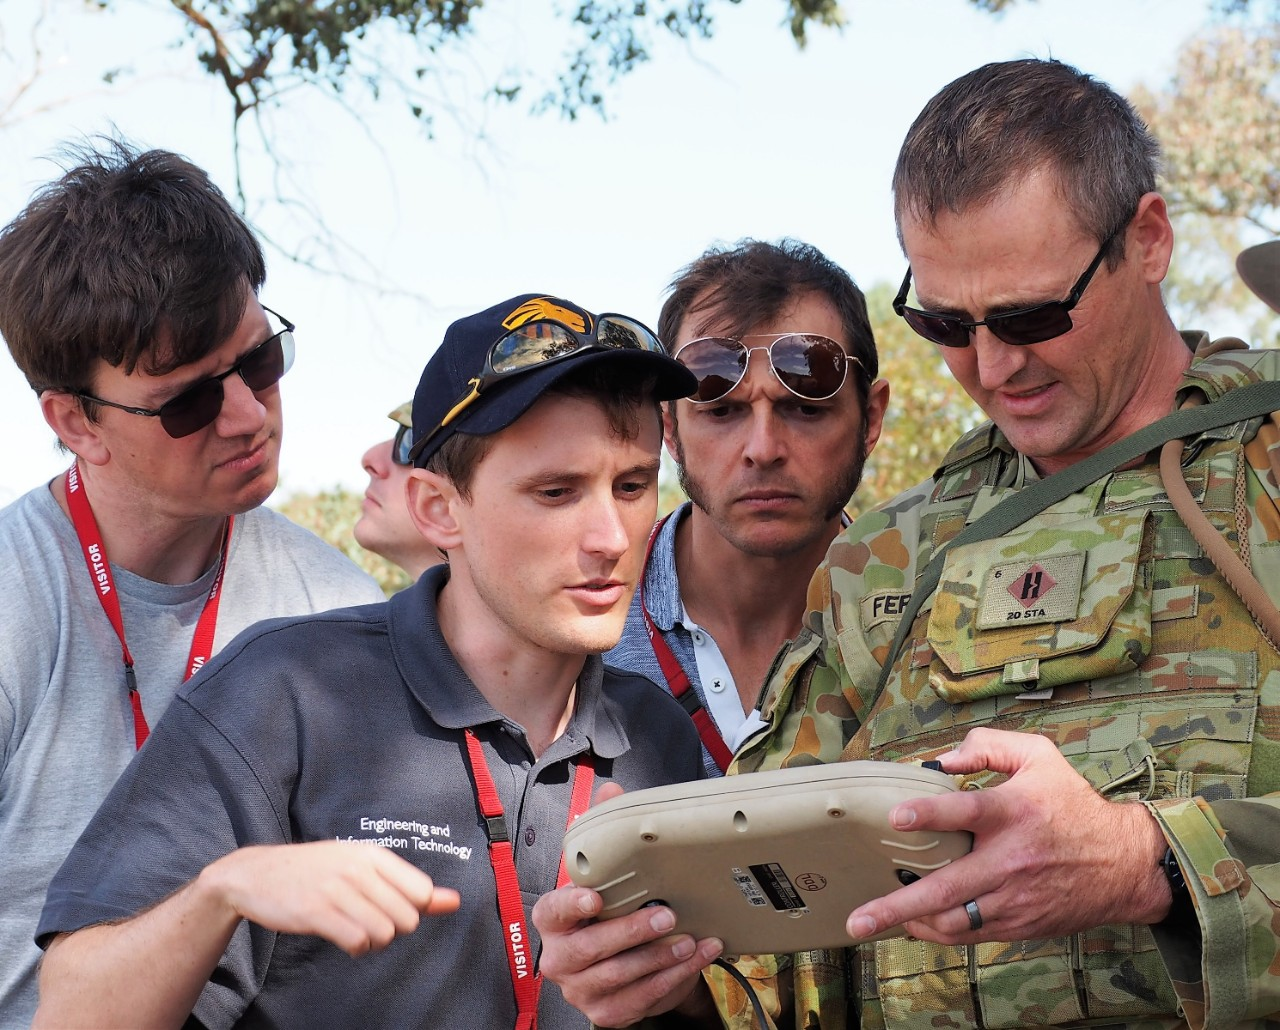 (L to R) AMME's Dr David Johnson, Matthew Anderson with AMSL Aero's Andrew Moore at the Australian Army event.